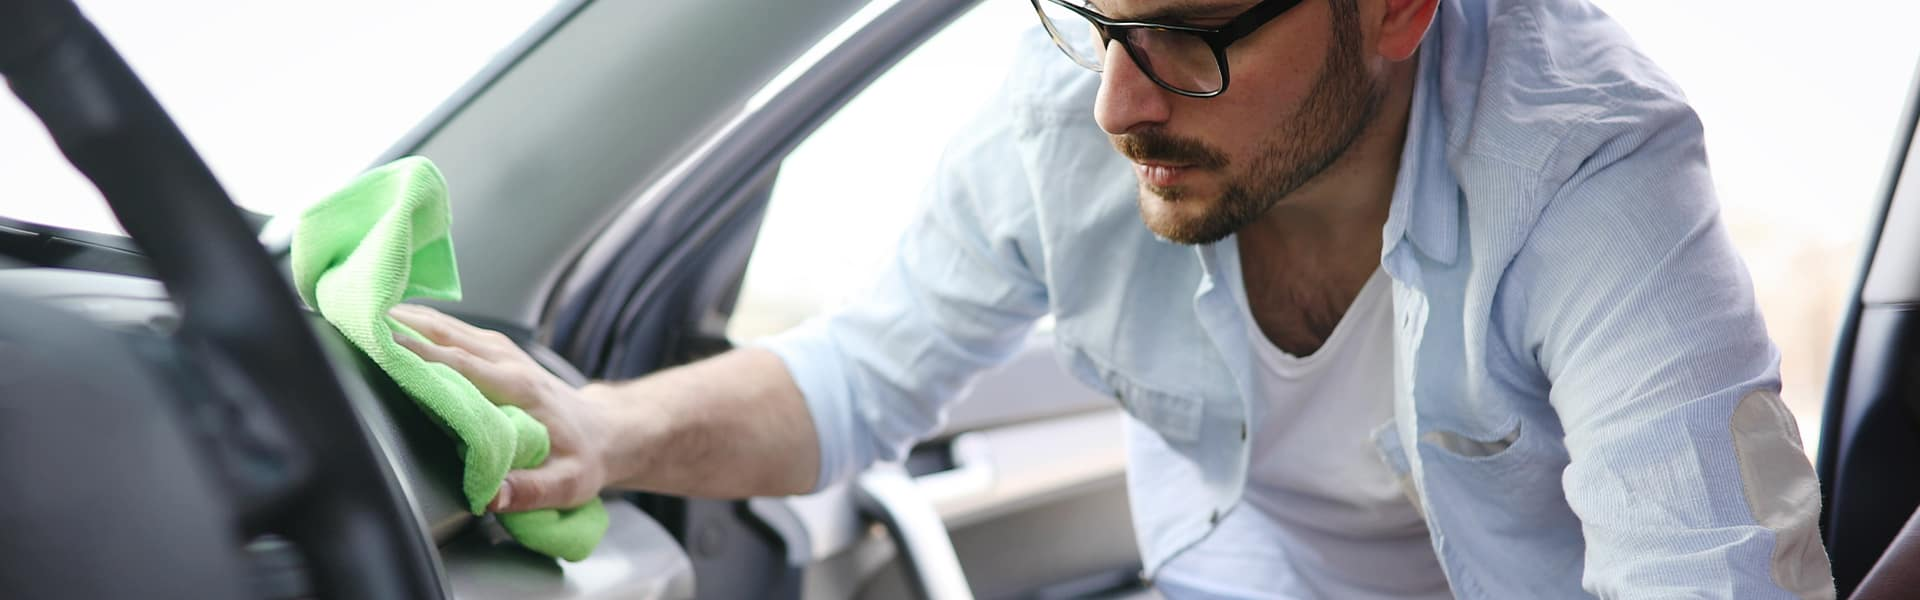 Tips for spring cleaning your car at Halterman's Toyota in East Stroudsburg   Man Washing Interior of Vehicle